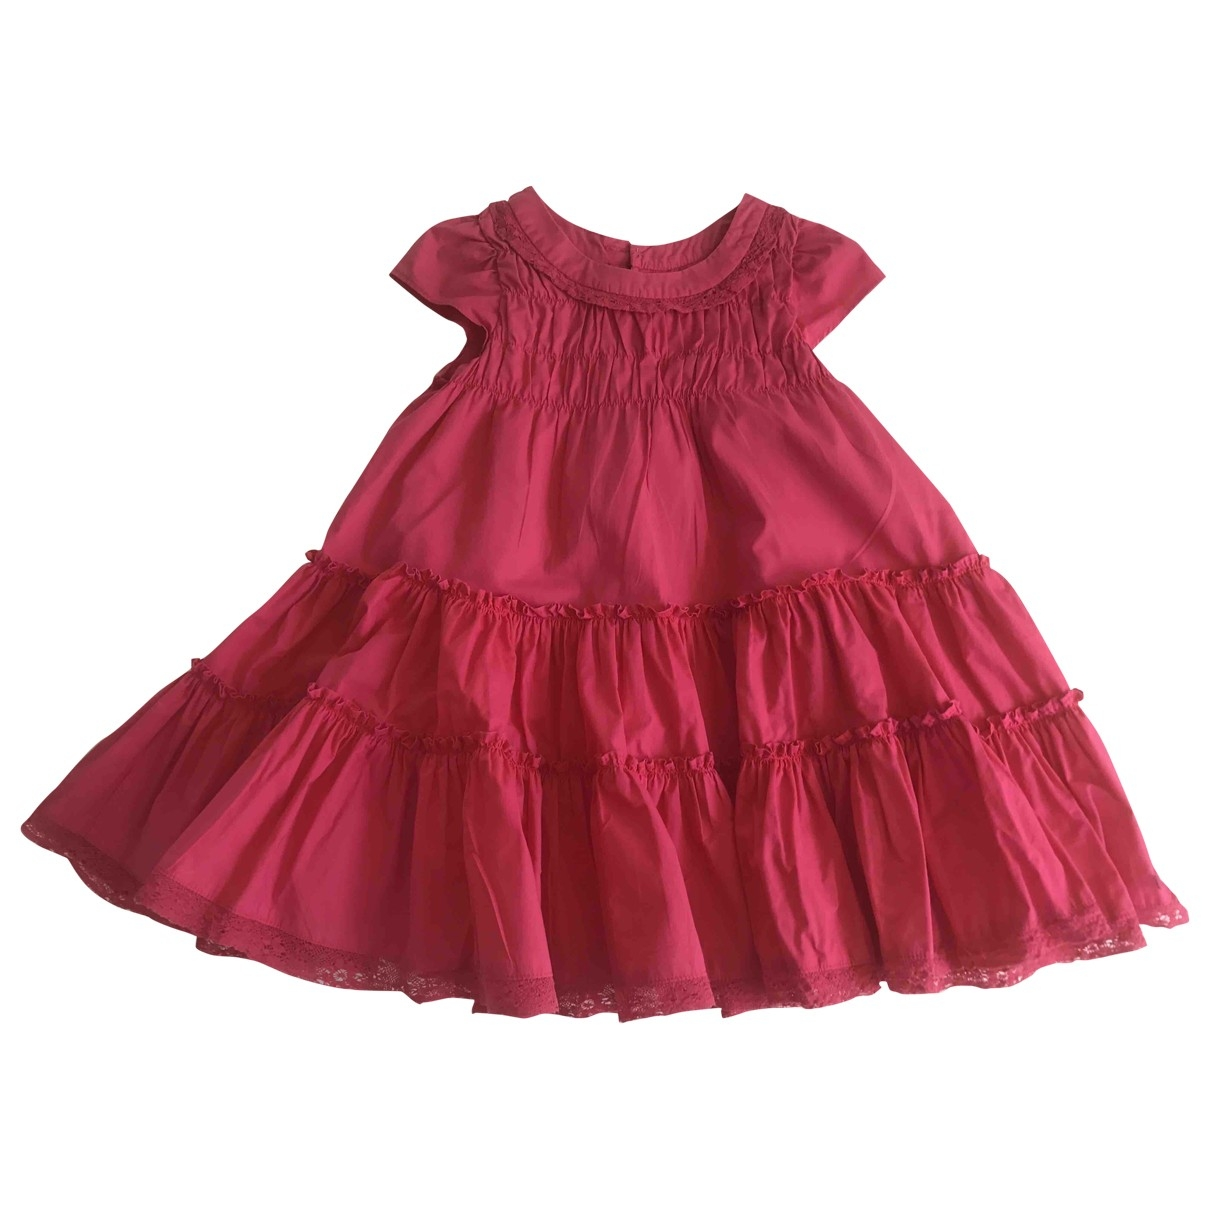 Lili Gaufrette \N Pink Cotton dress for Kids 5 years - up to 108cm FR